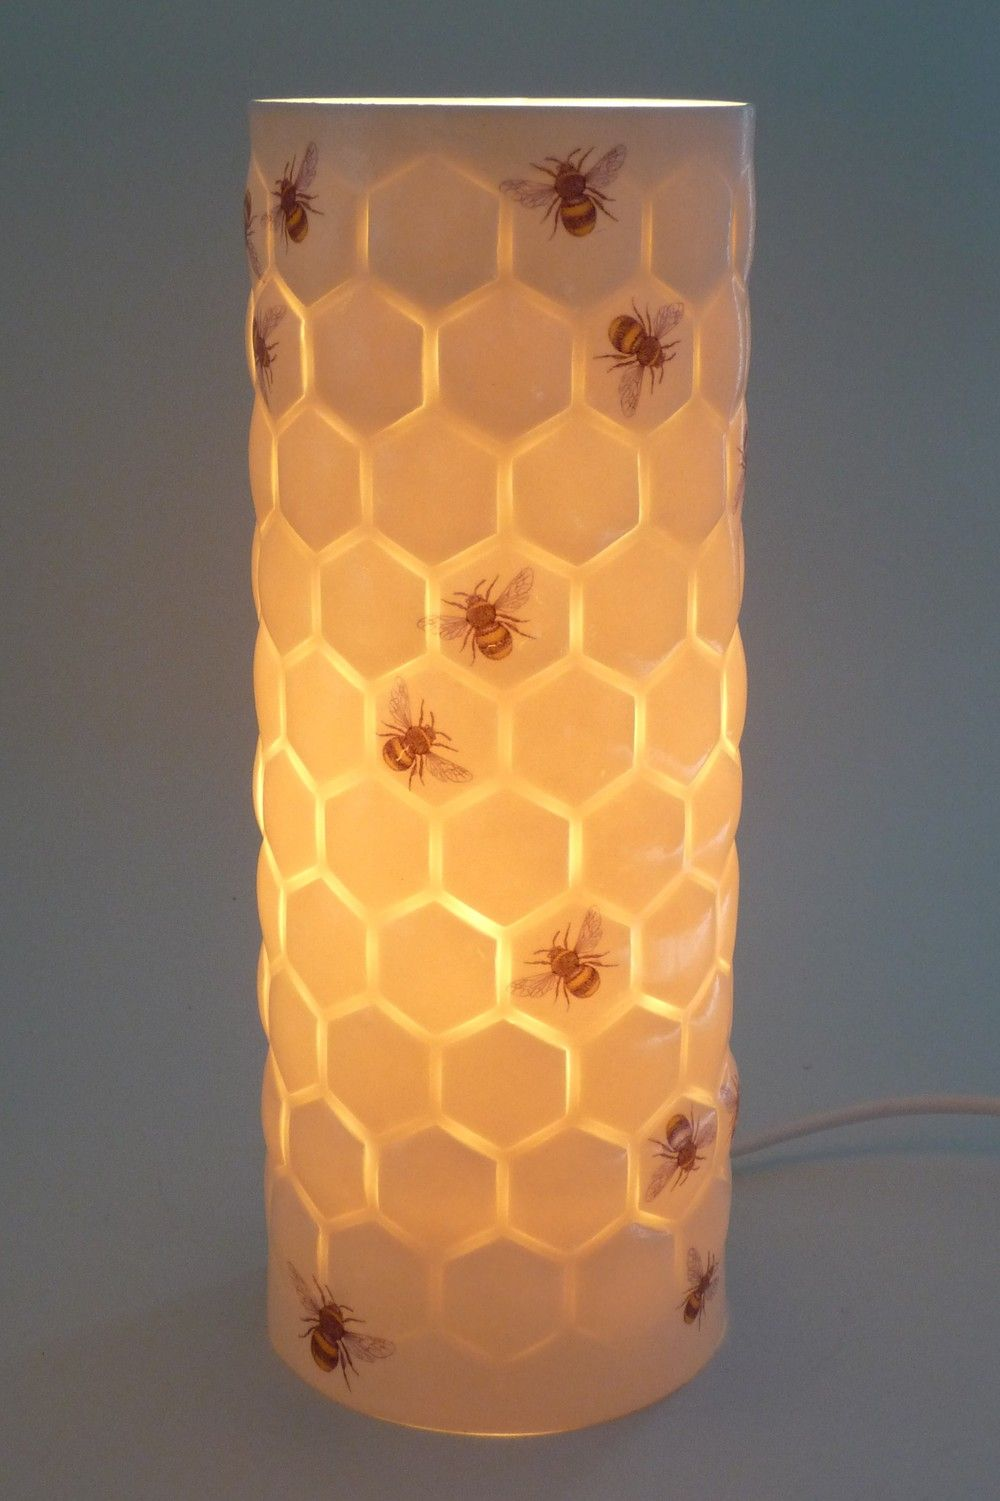 So in love with this Porcelain lamp with bee and honeycomb design ...